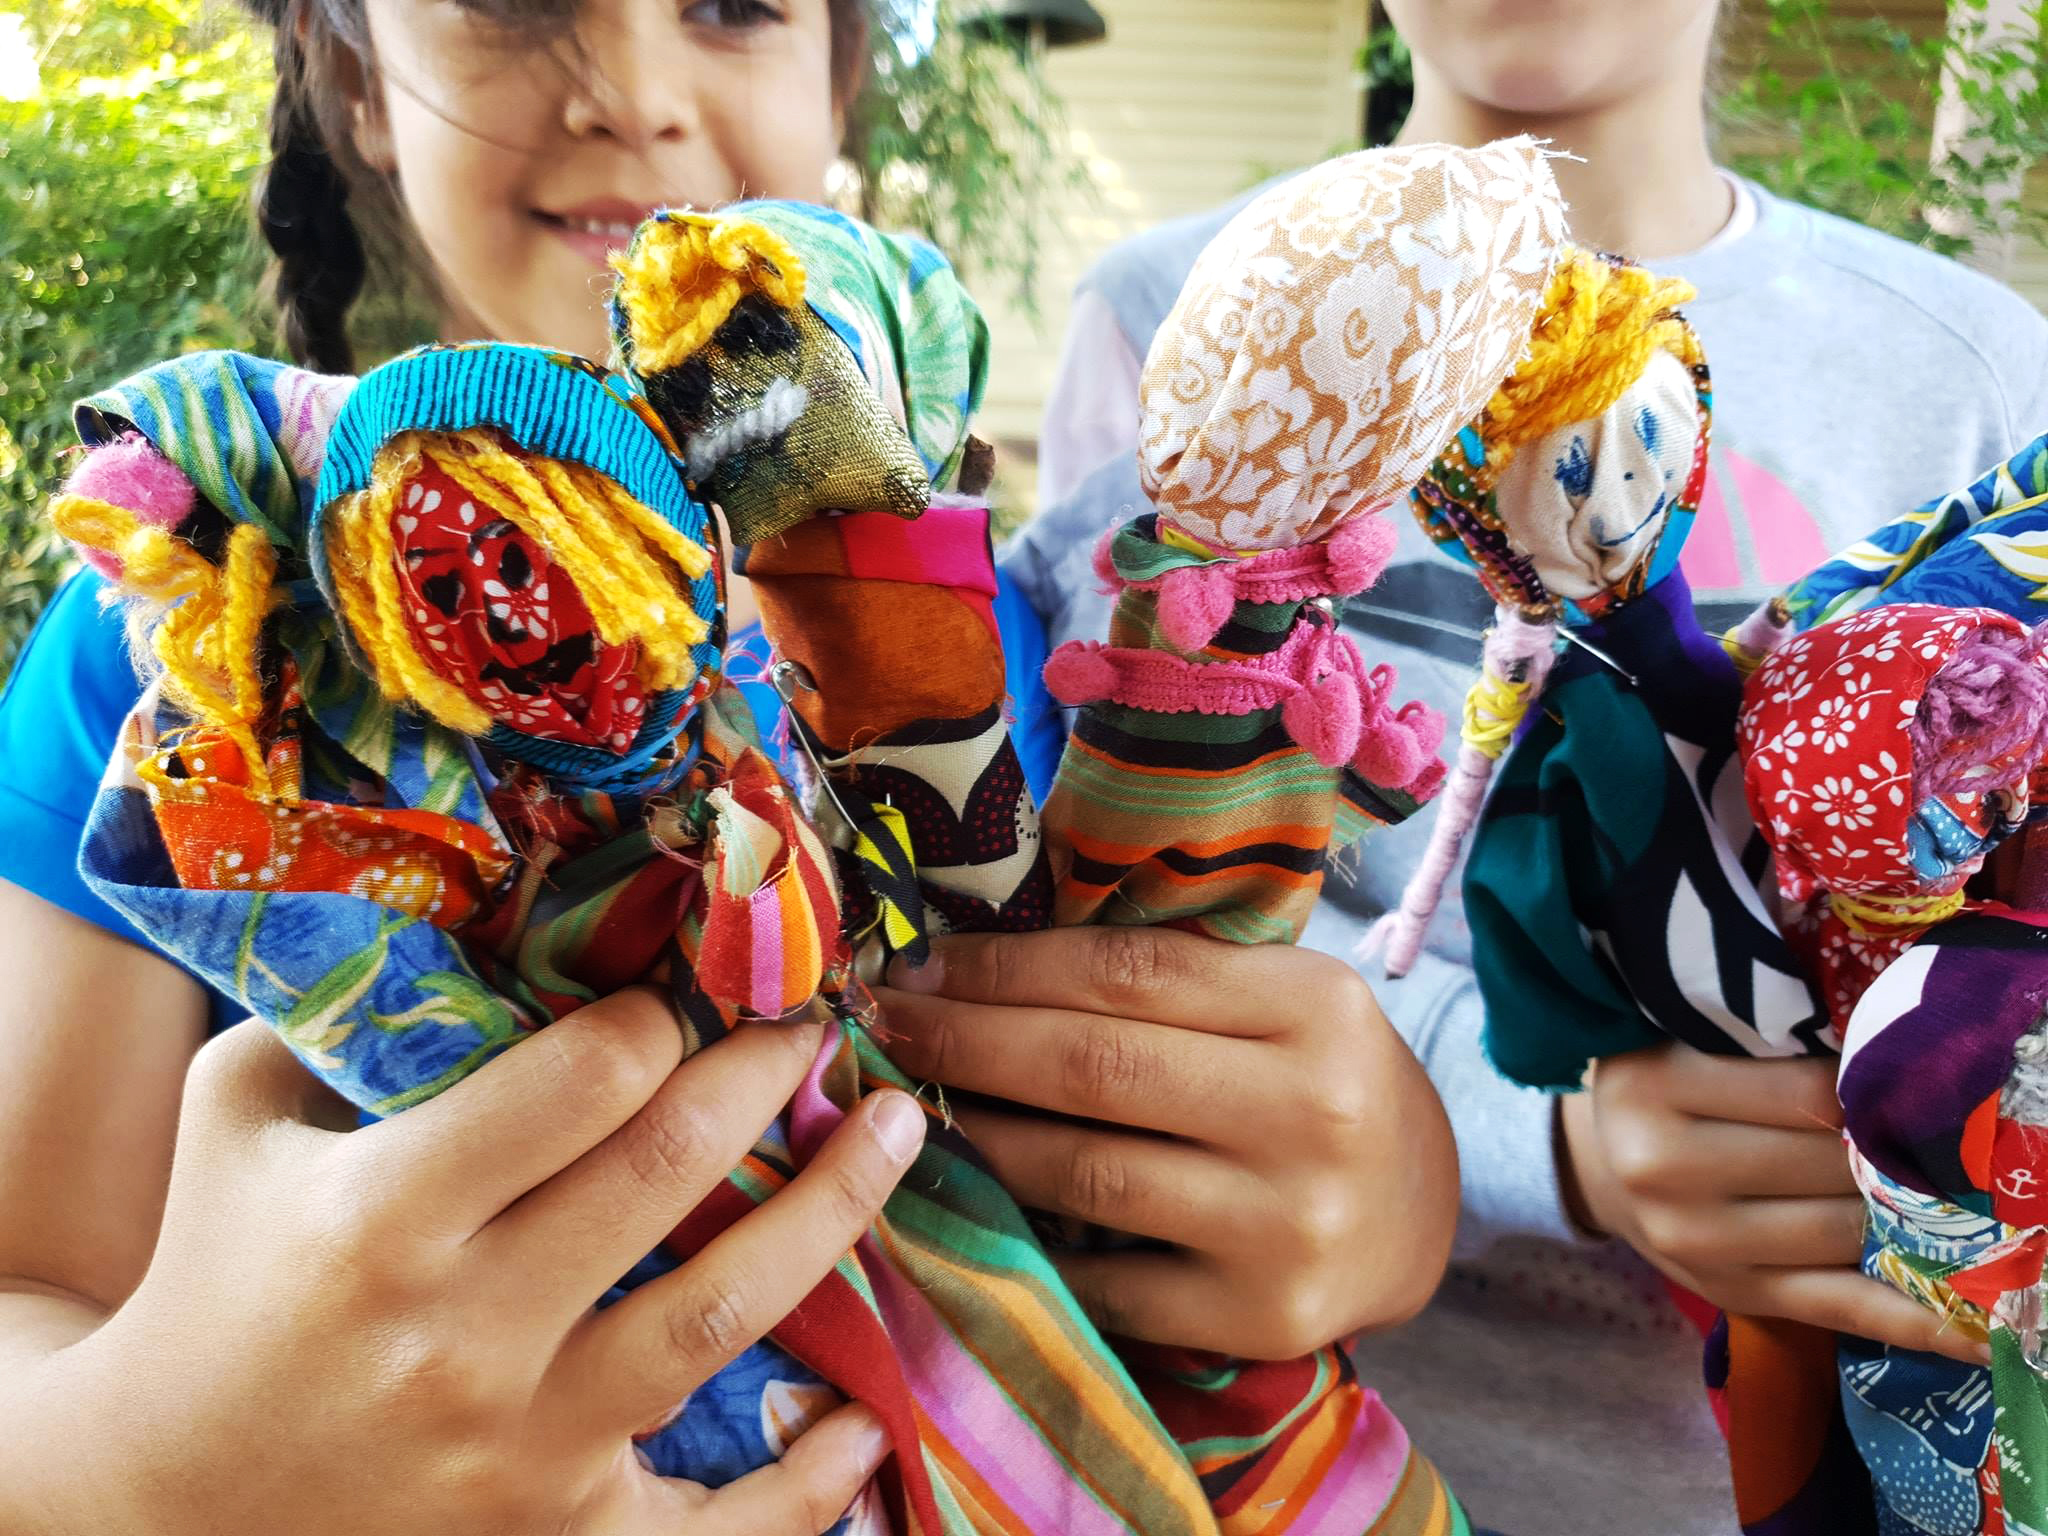 Kids Folk Doll workshop at Fairfield City Museum & Gallery